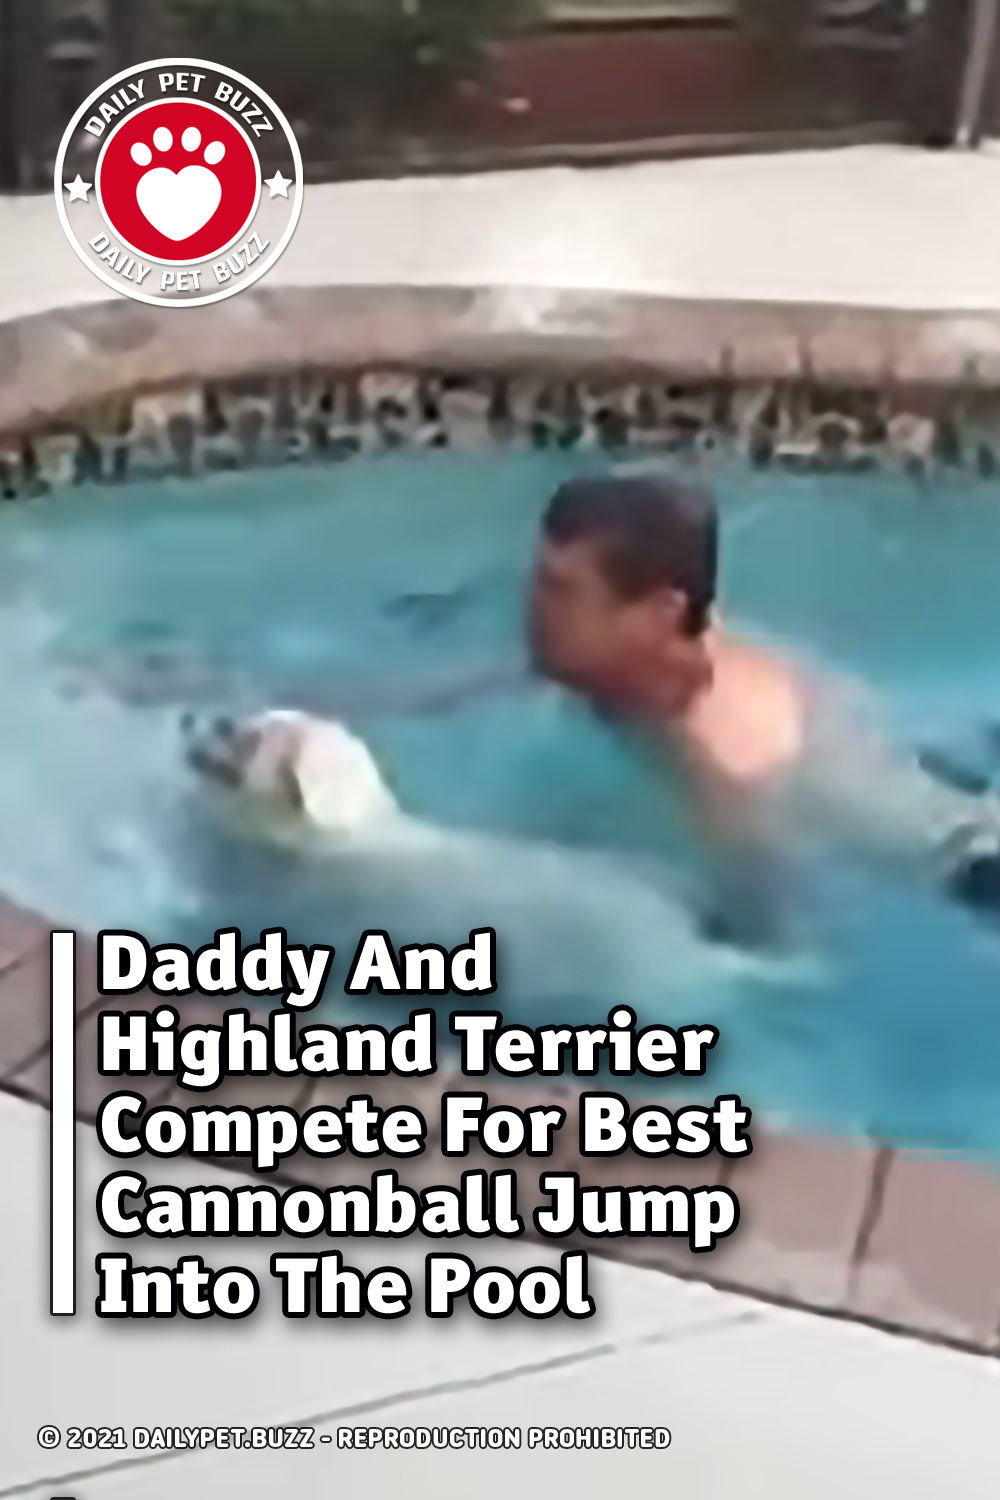 Daddy And Highland Terrier Compete For Best Cannonball Jump Into The Pool